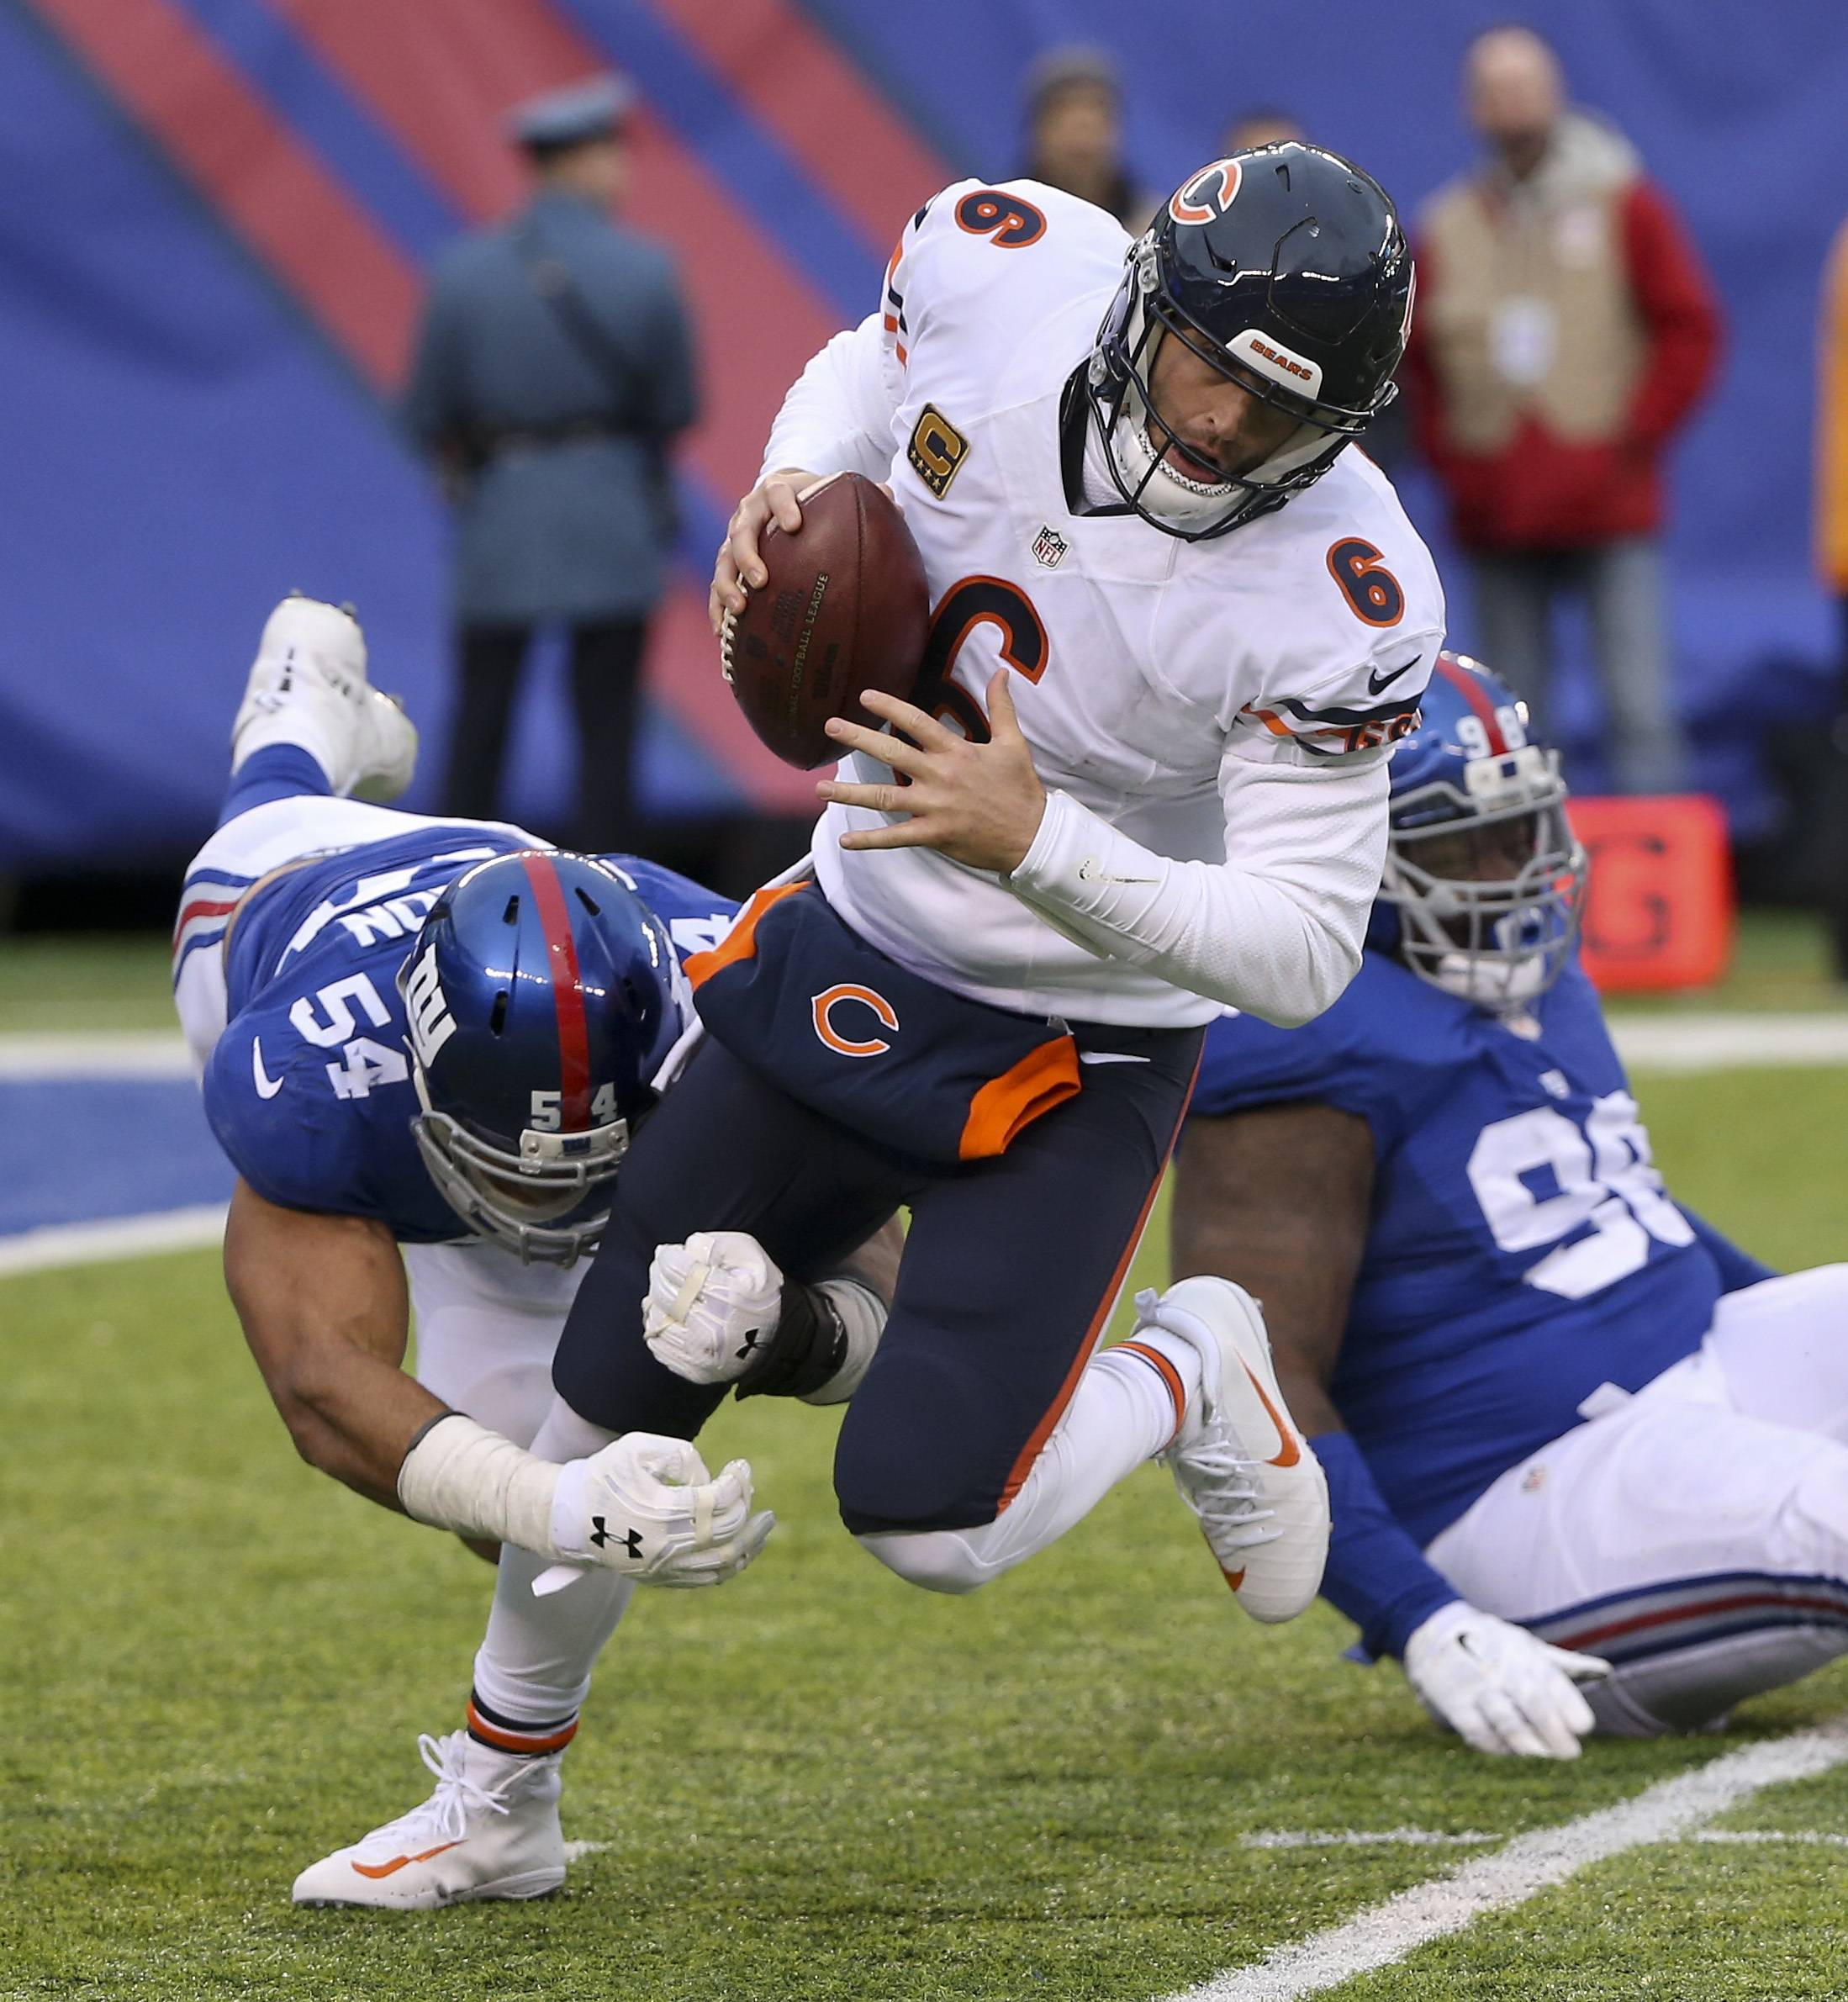 The Chicago Bears are releasing quarterback Jay Cutler, ESPN is reporting.